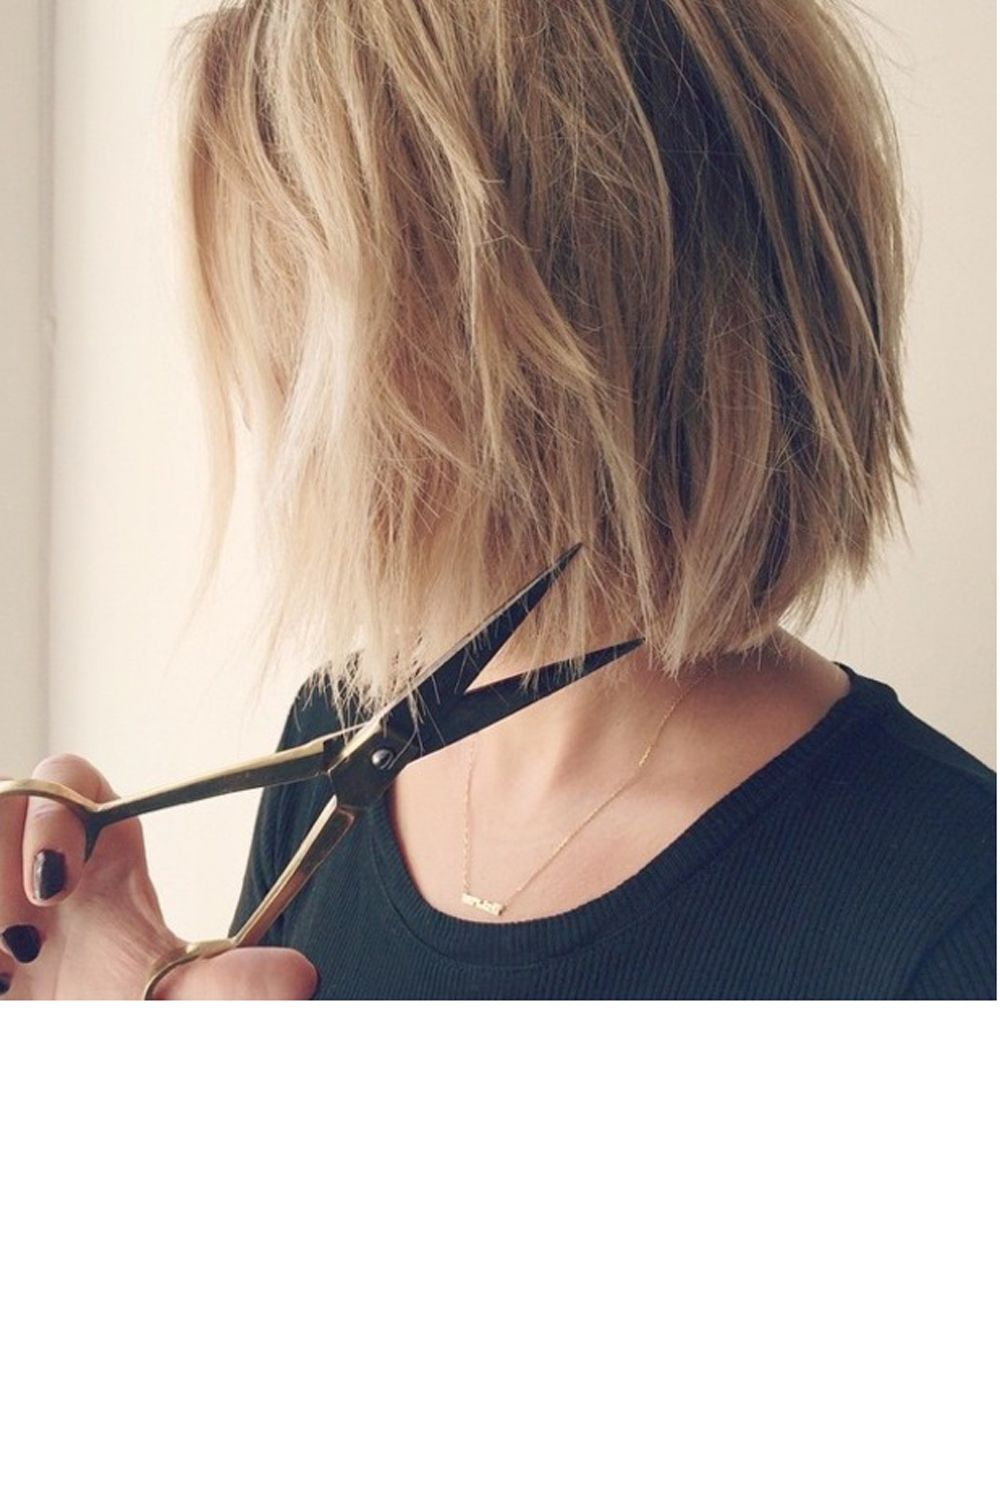 Bob Hairstyles To Give You All The Short Hair Inspo Makeup And